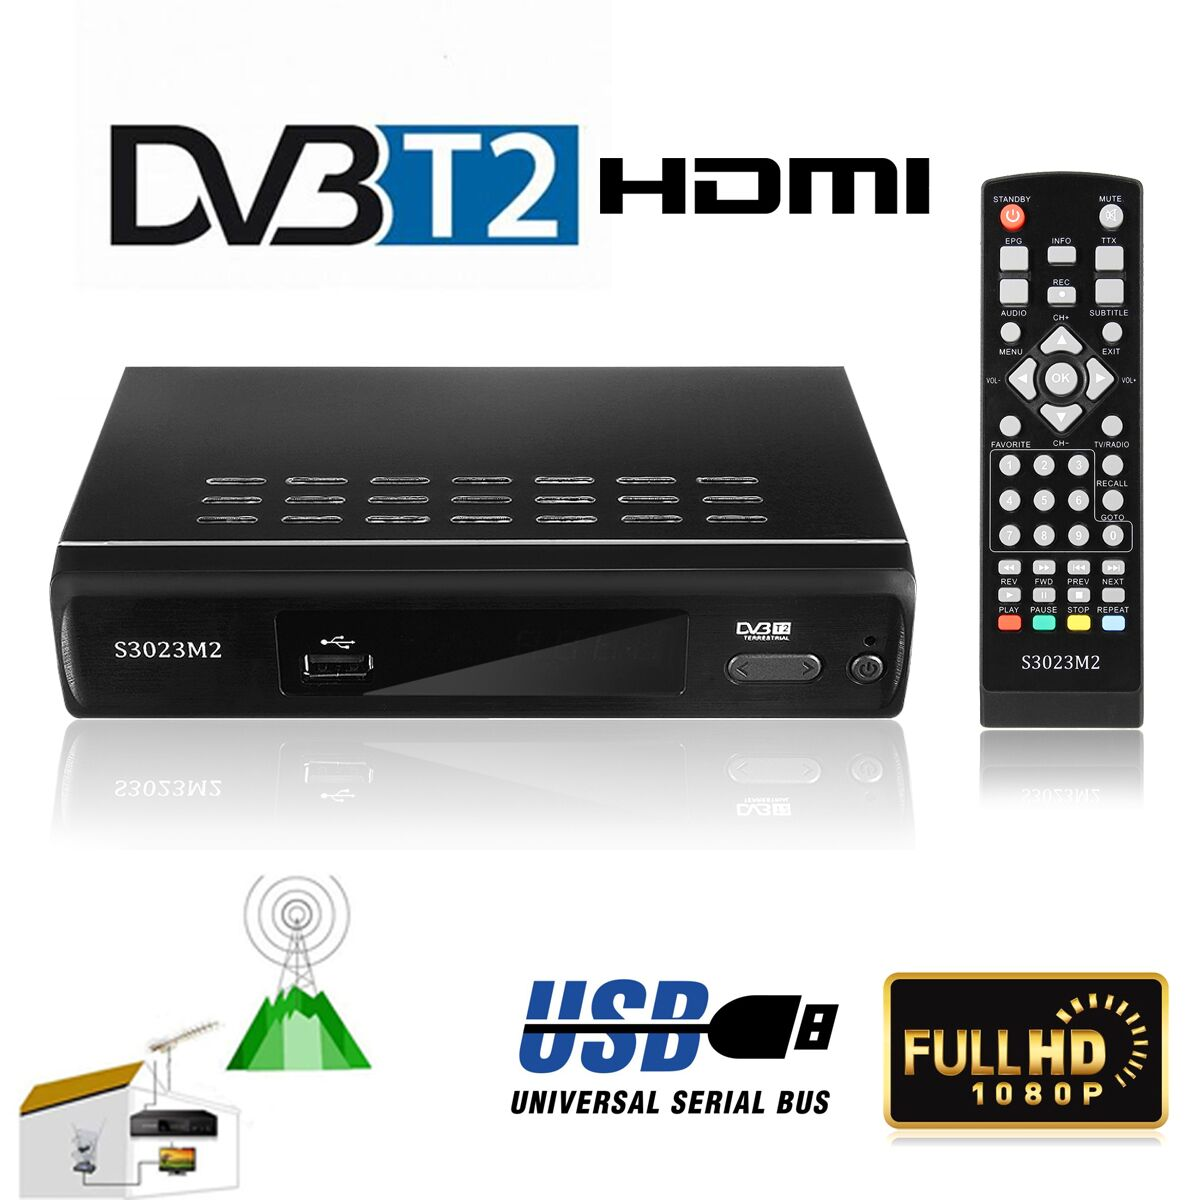 H.265 DVB-T2 MPEG-2 lnb Satellite Receiver Full 1080P TV Receiver TV box Digital HD Satellite Video Broadcasting Box HDTV наушники jbl t205 chrome